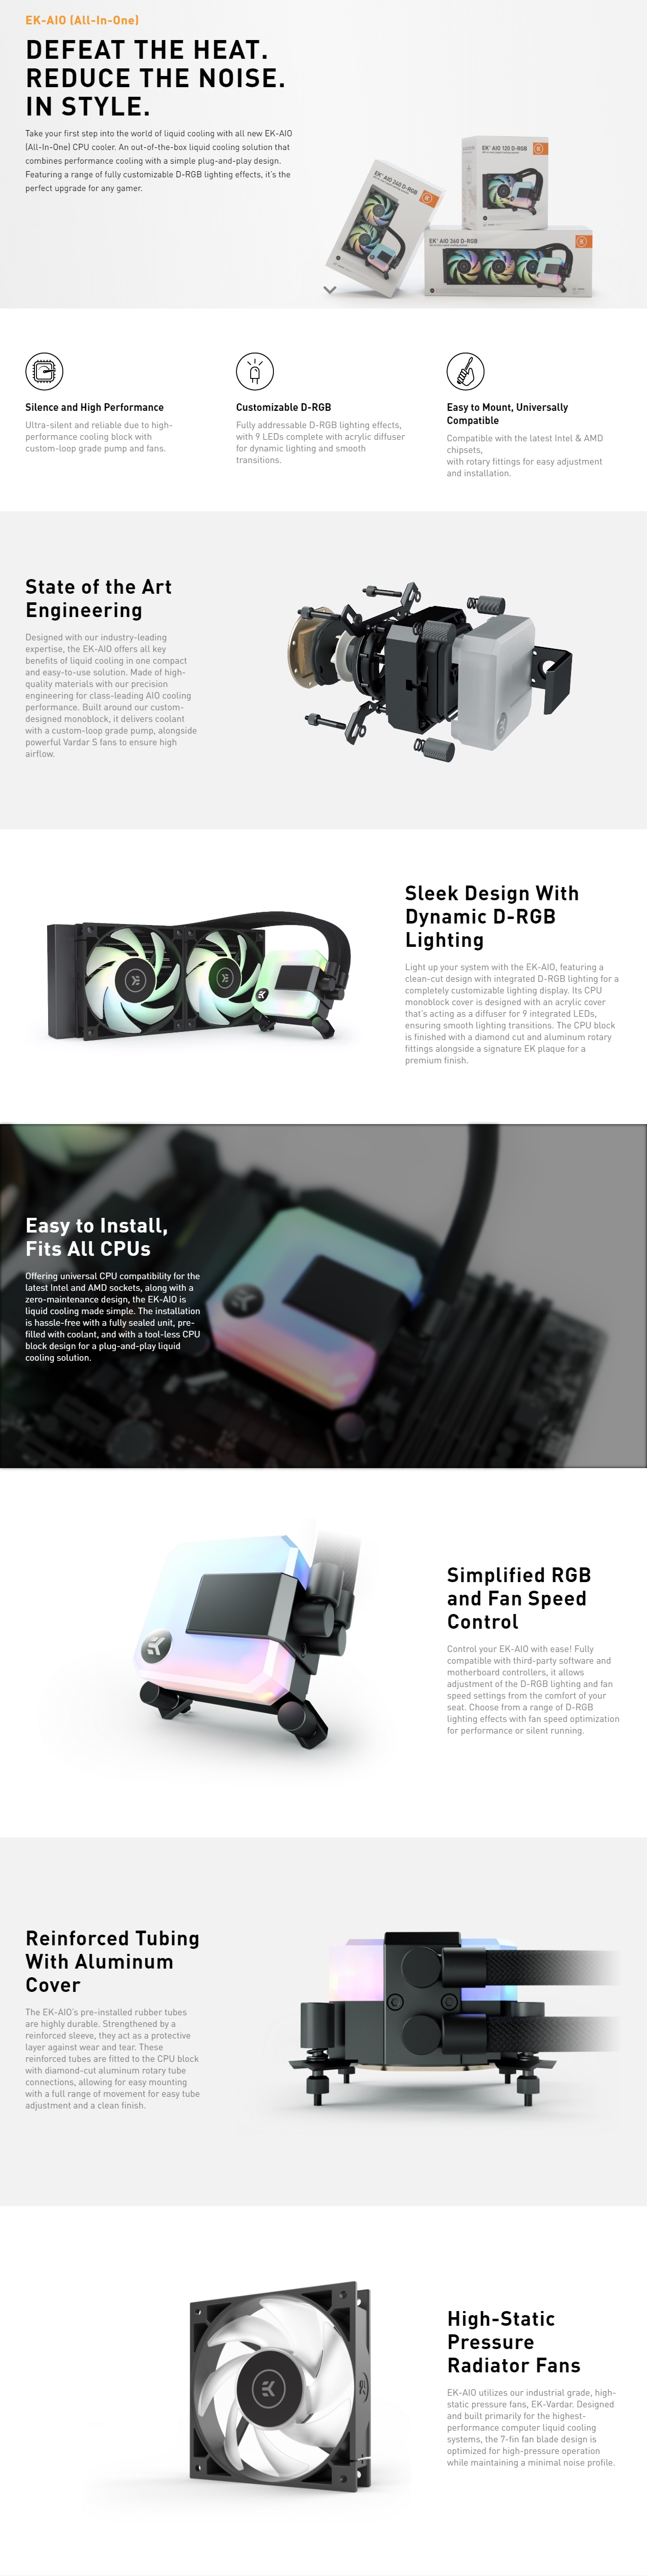 A large marketing image providing additional information about the product EK AIO 120 D-RGB AIO Liquid CPU Cooler - Additional alt info not provided